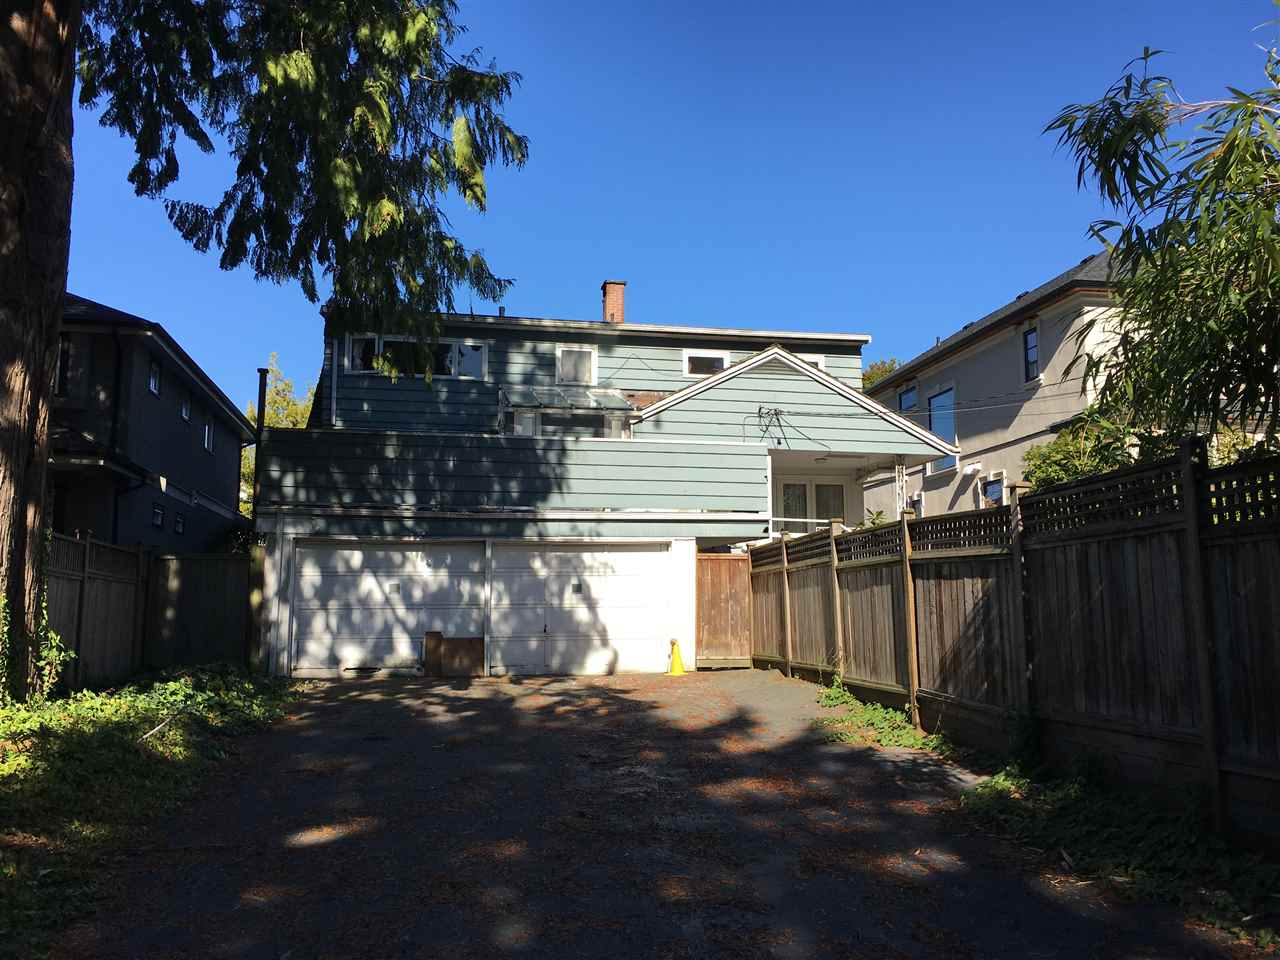 Photo 3: 1768 W 61ST Avenue in Vancouver: South Granville House for sale (Vancouver West)  : MLS® # R2120423